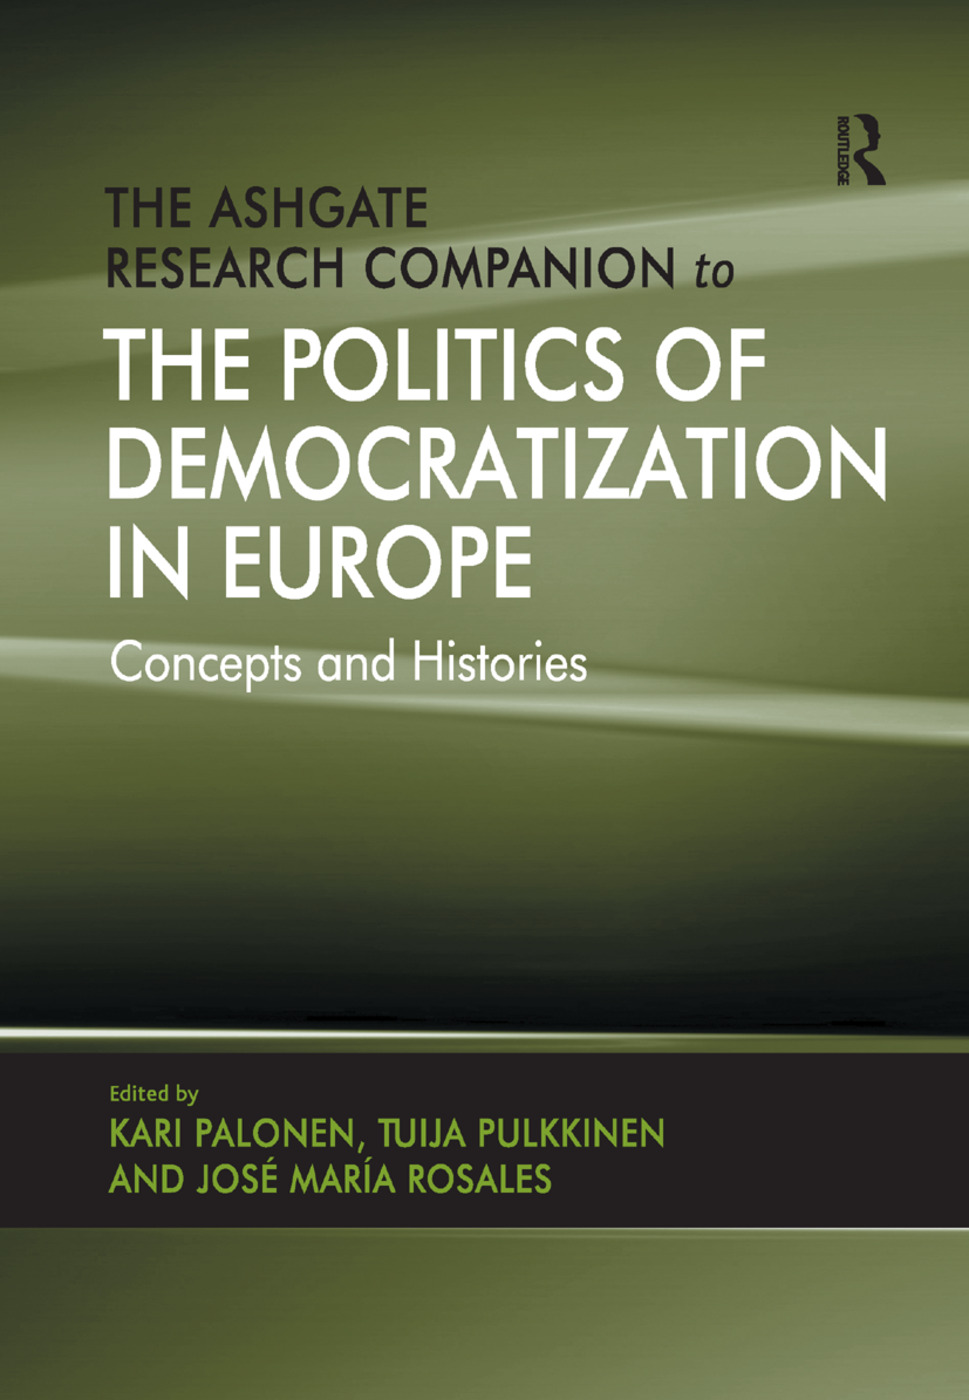 The Ashgate Research Companion to the Politics of Democratization in Europe: Concepts and Histories book cover